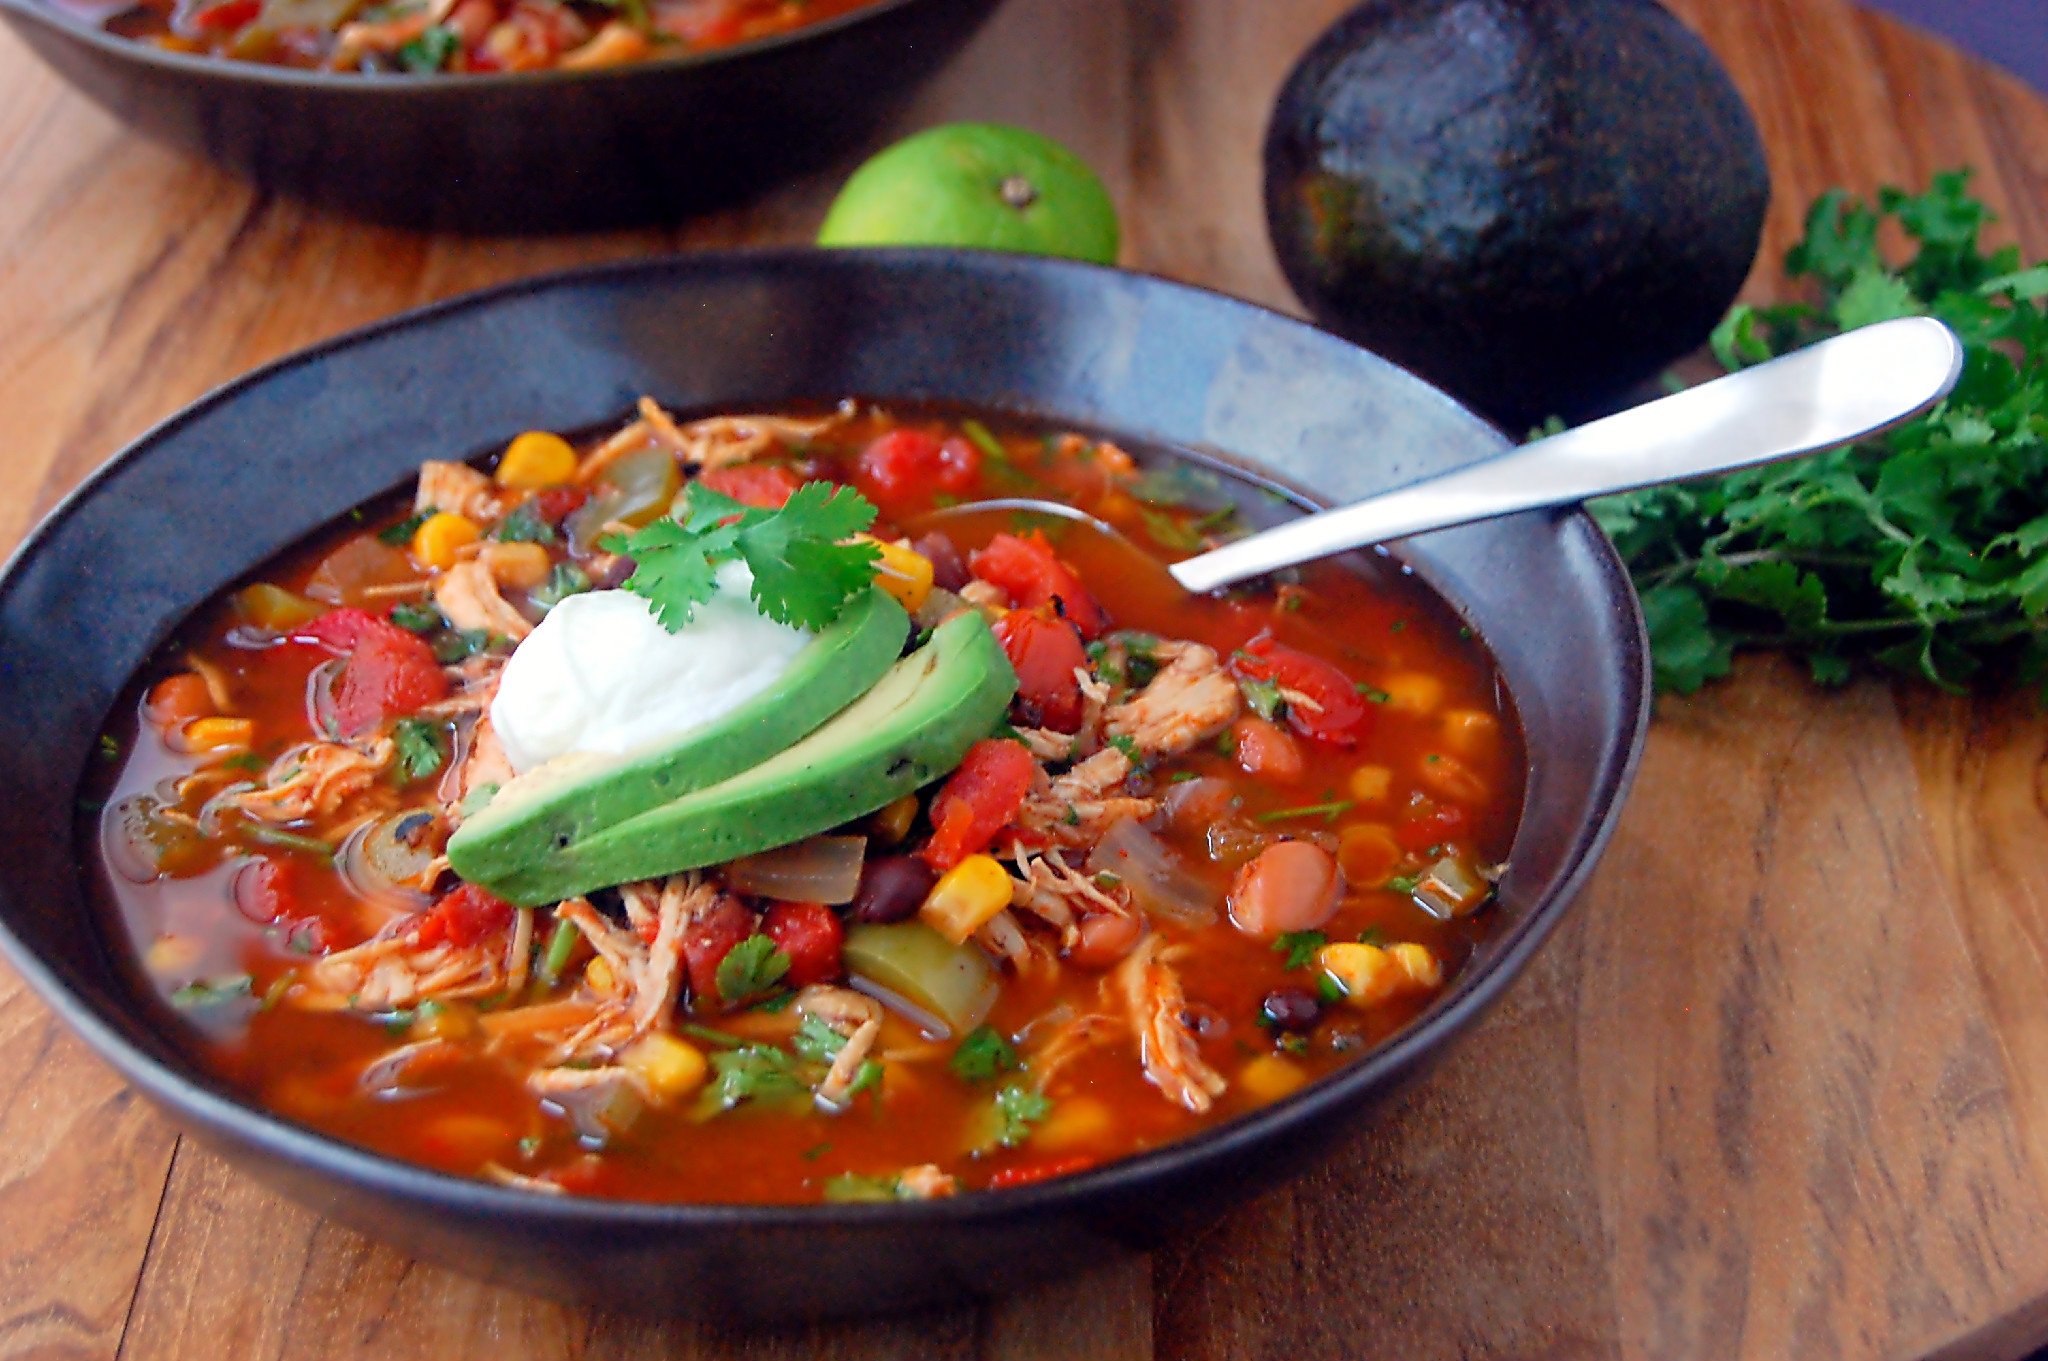 A simple recipe for Slow Cooker Southwestern Chicken Soup, packed with shredded chicken, beans, tomato, corn, and simple spices.